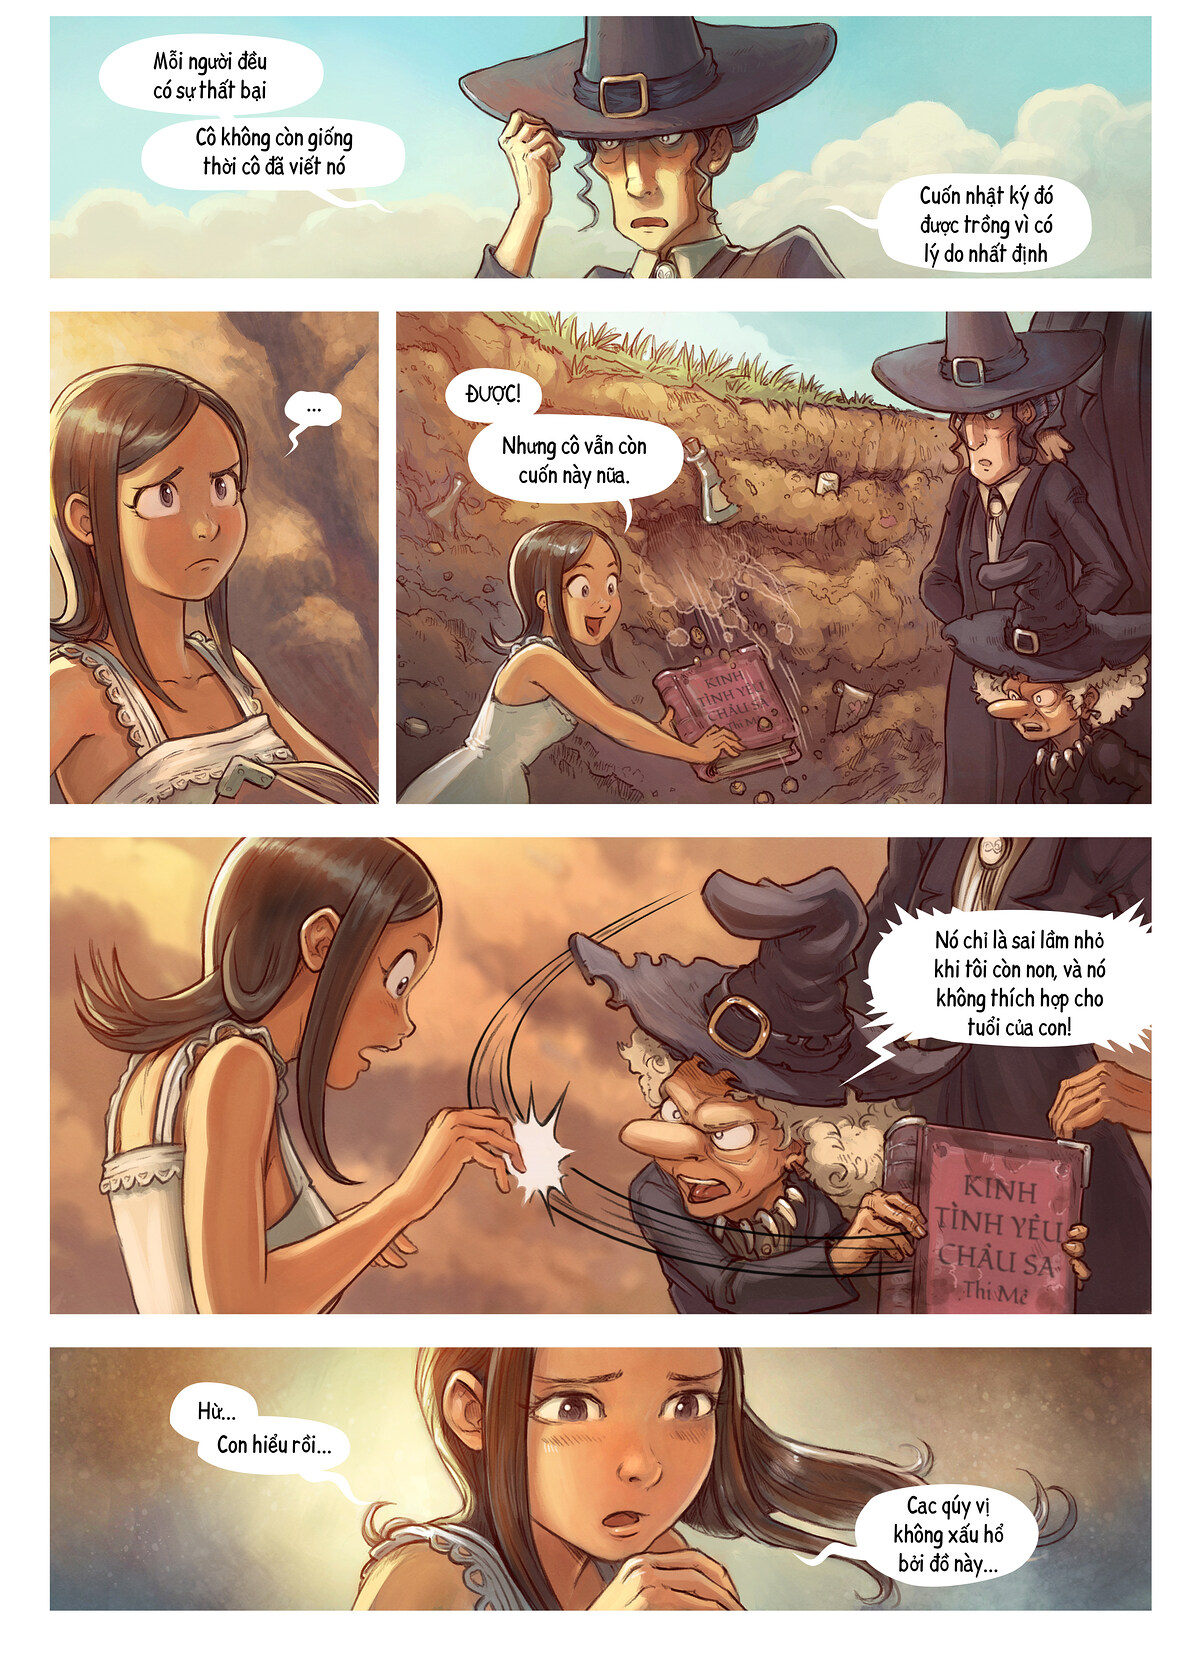 A webcomic page of Pepper&Carrot, Tập 19 [vi], trang 5